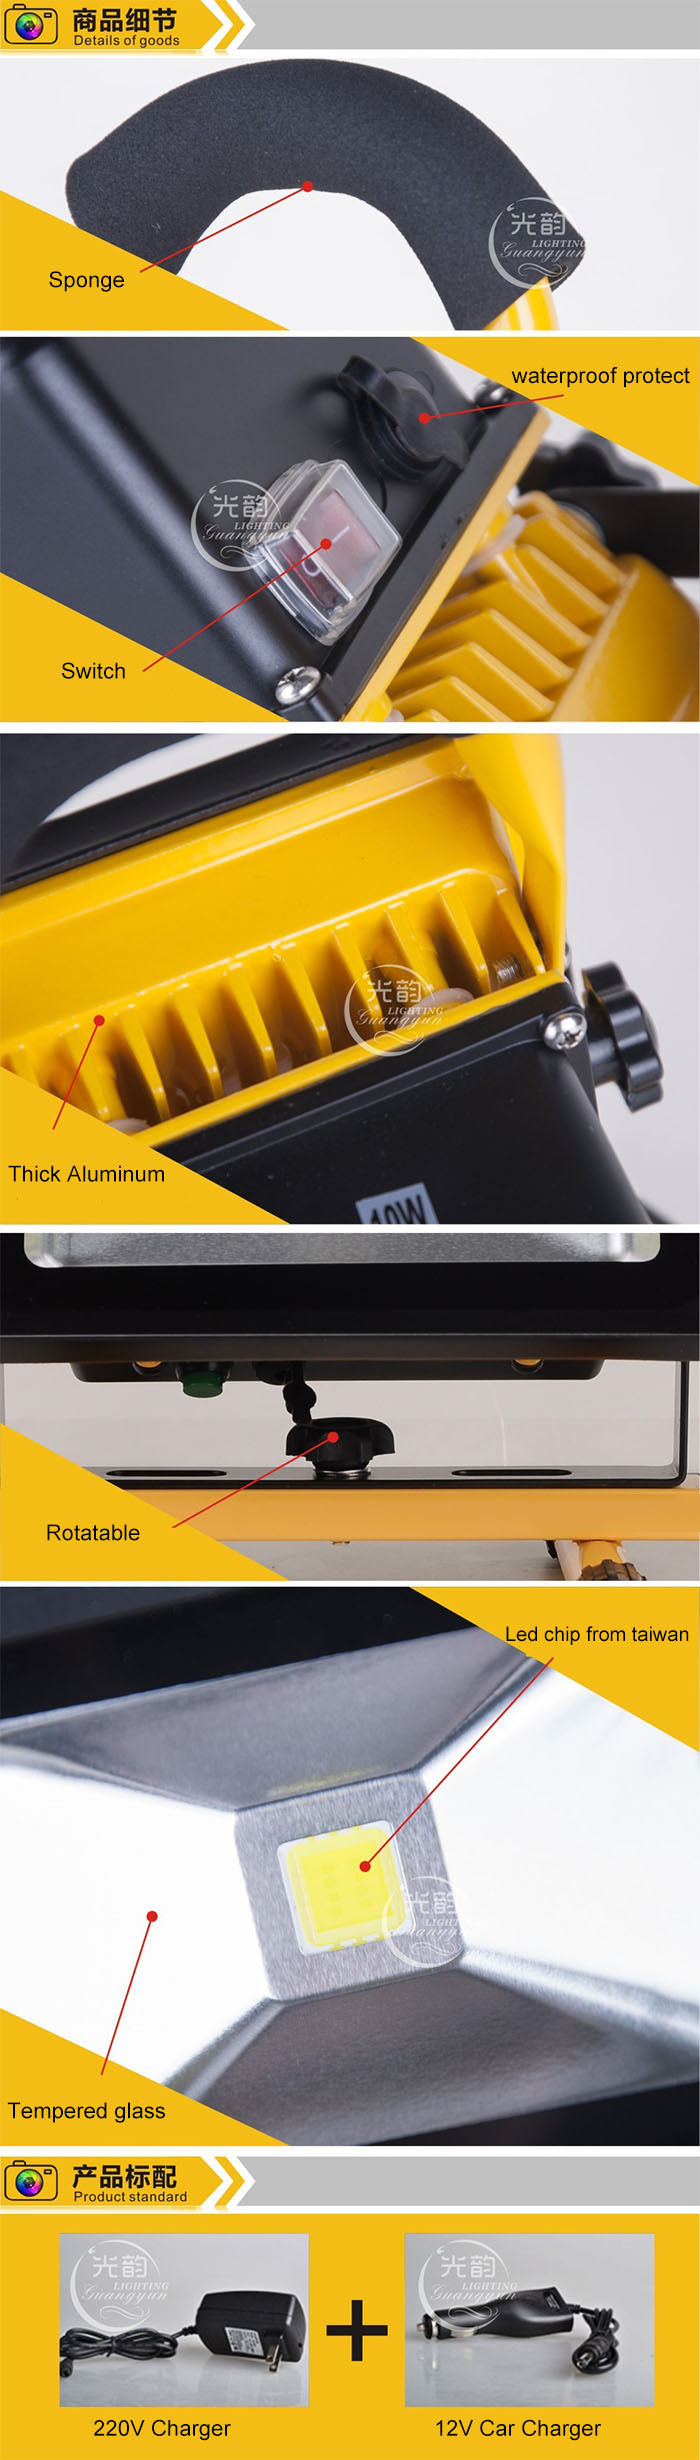 Led Flood Light Rechargeable Portable Led Battery Work Light With ...